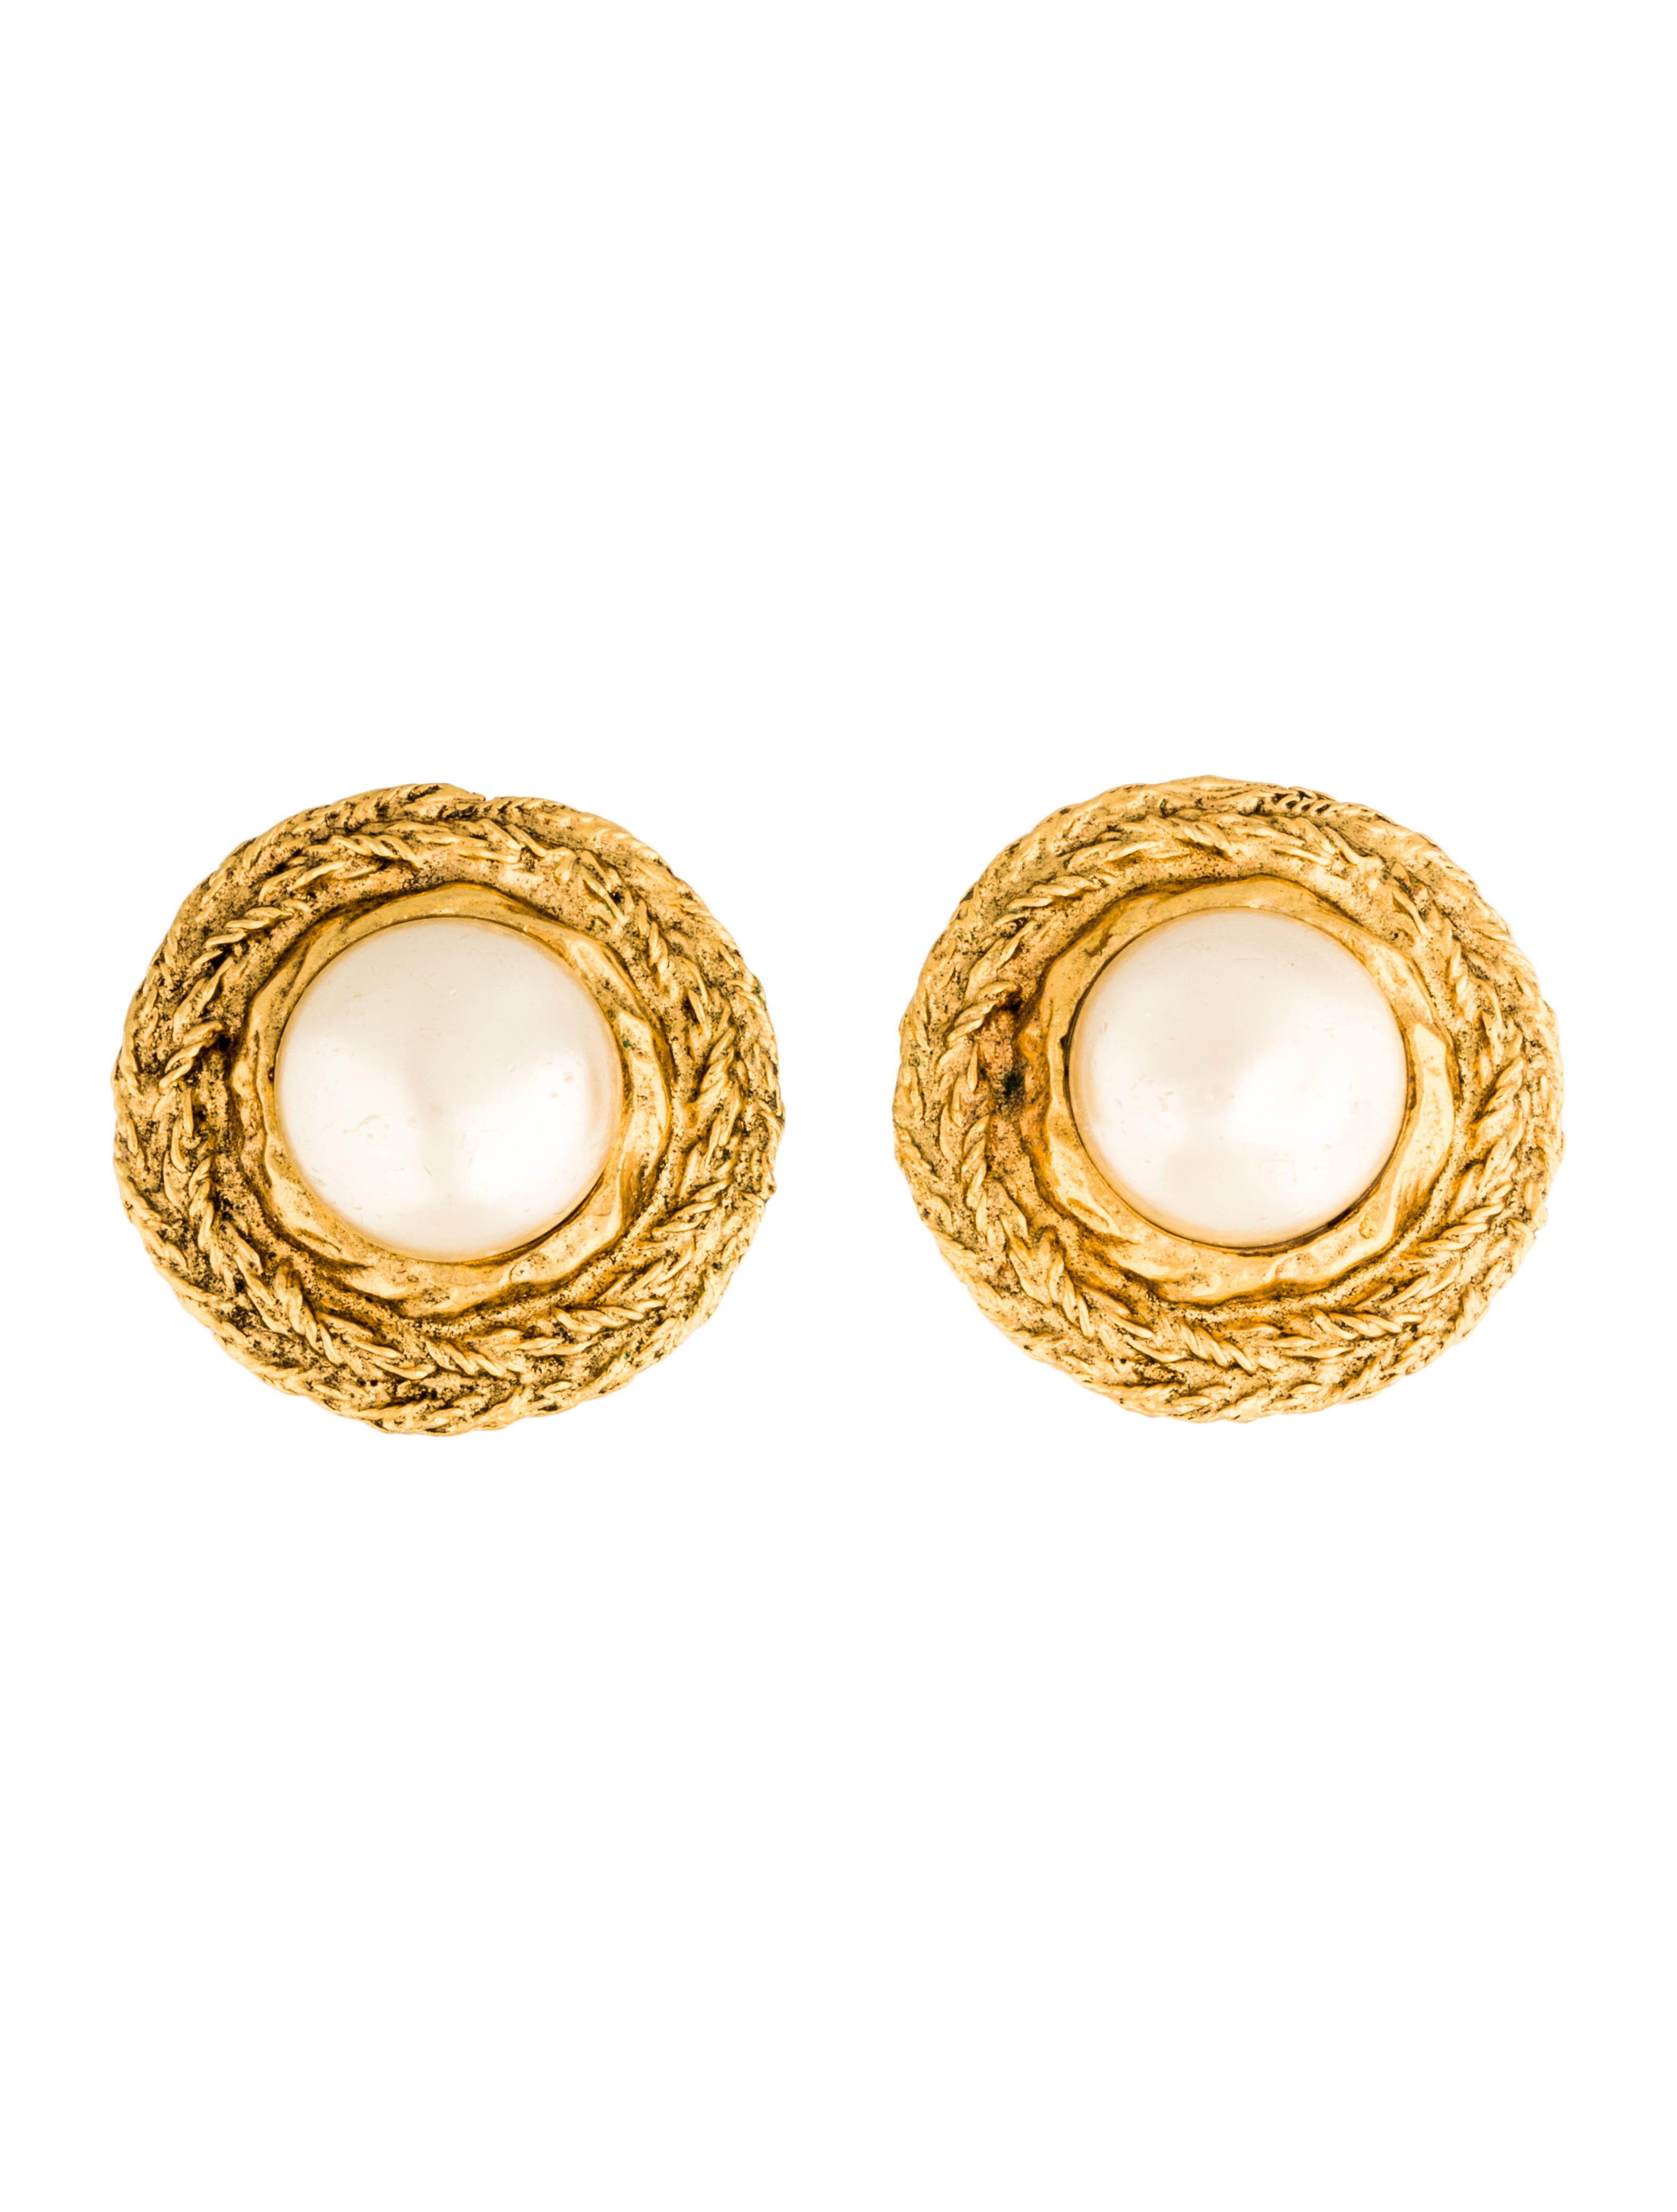 channel jewelry earrings chanel faux pearl medallion earrings earrings 2691